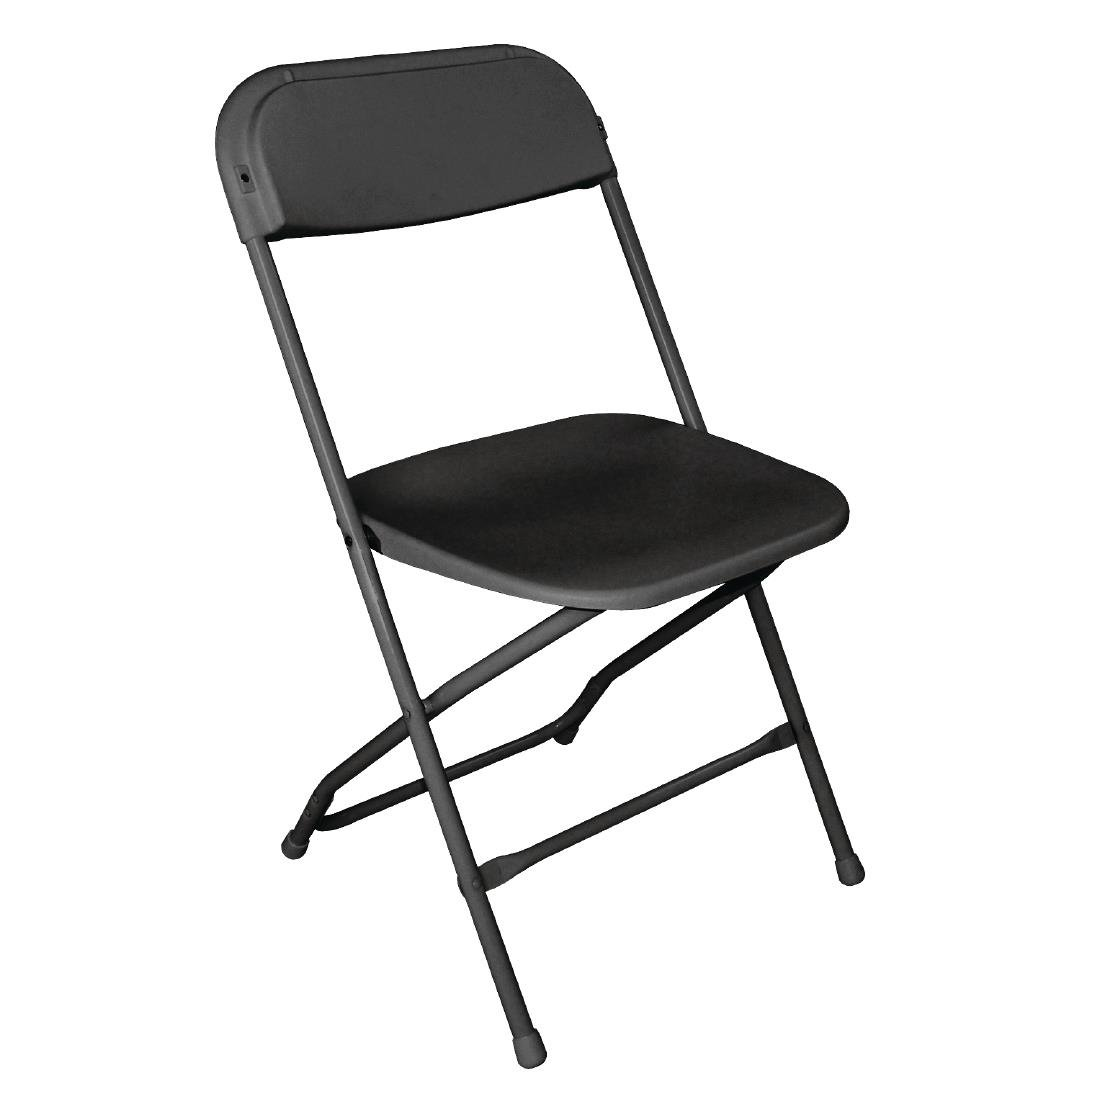 Black folding chair hire London